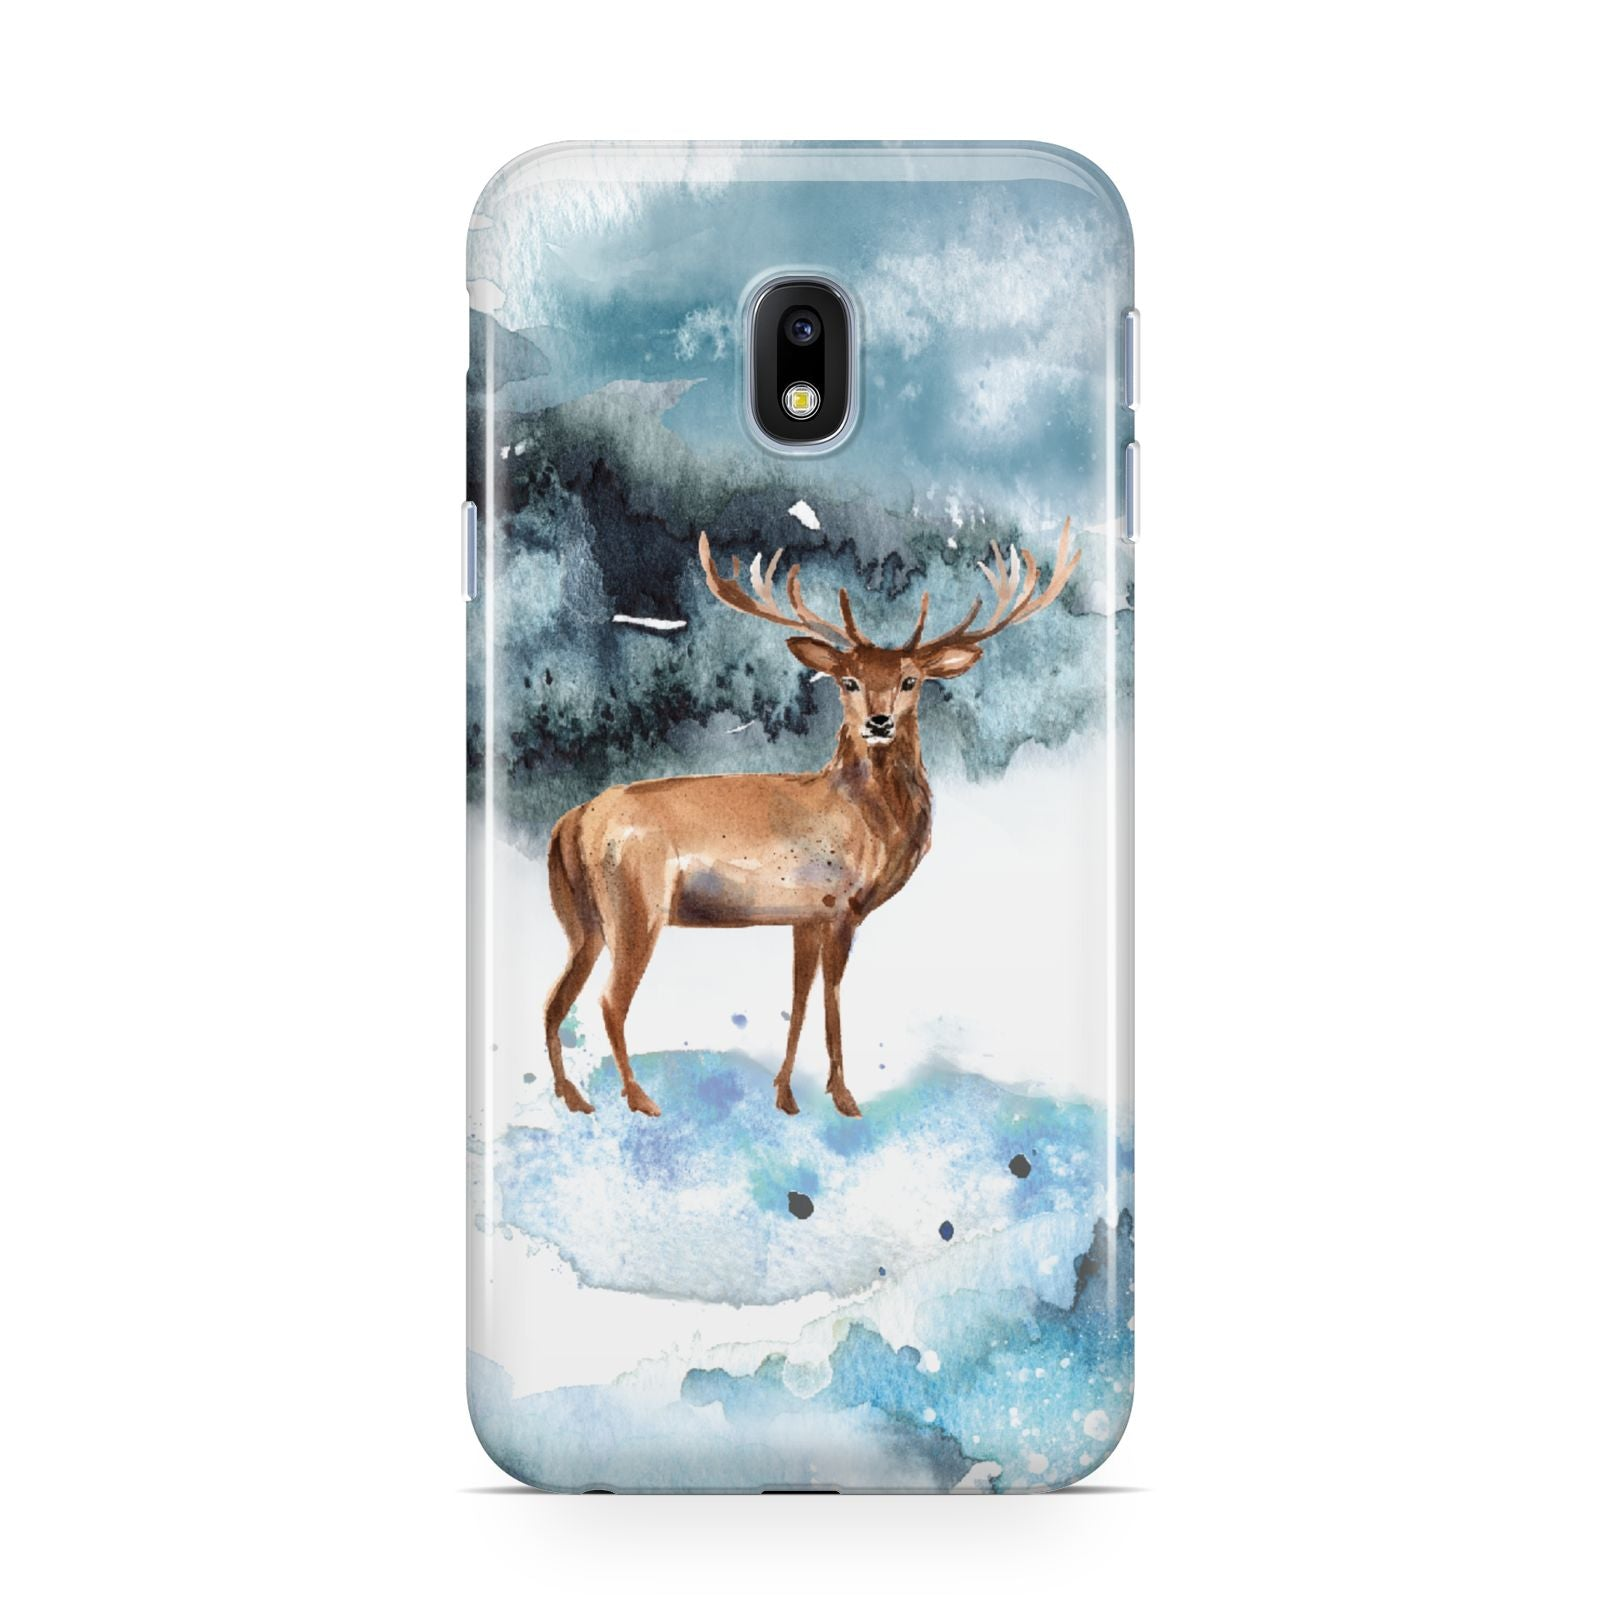 Christmas Winter Stag Samsung Galaxy J3 2017 Case